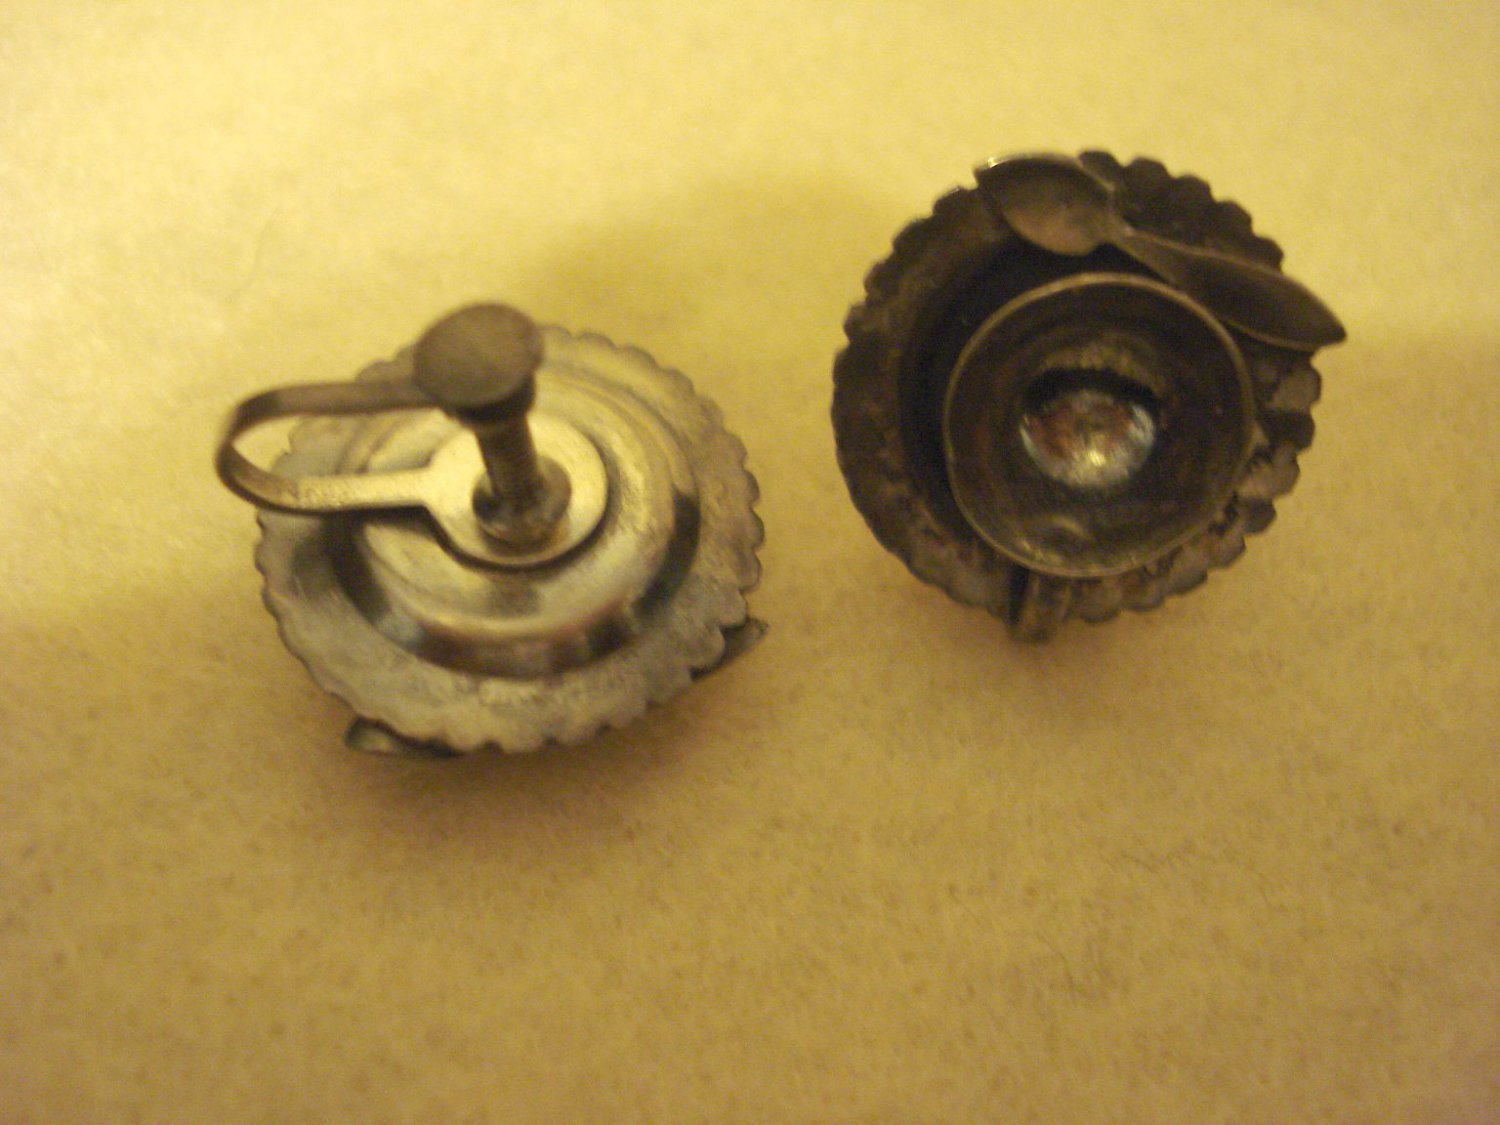 Unmarked Silver Teacup Saucer and Spoon Vintage Earrings, Screw-on